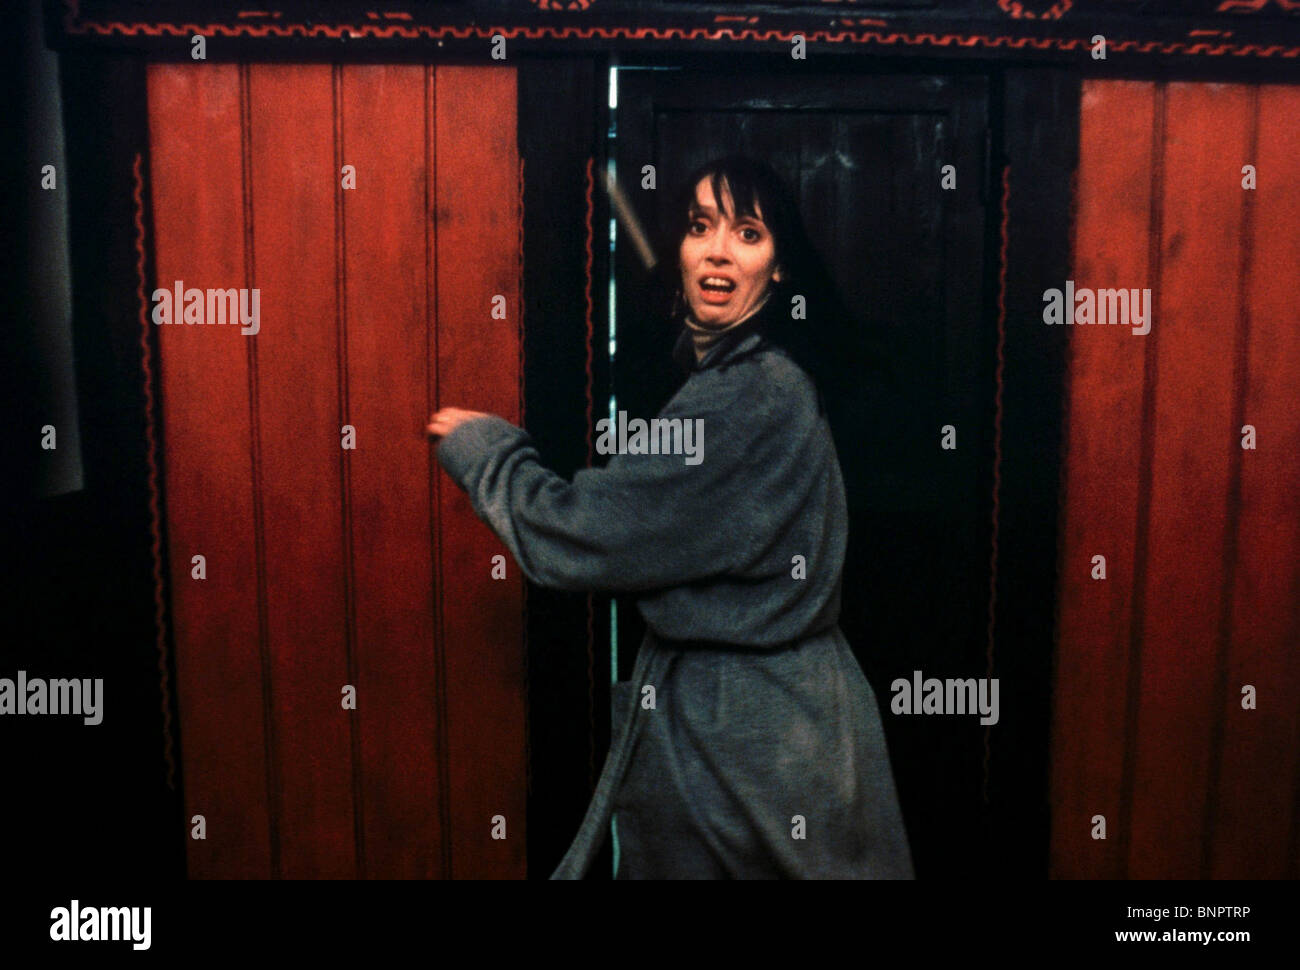 SHELLEY DUVAL THE SHINING (1980) - Stock Image